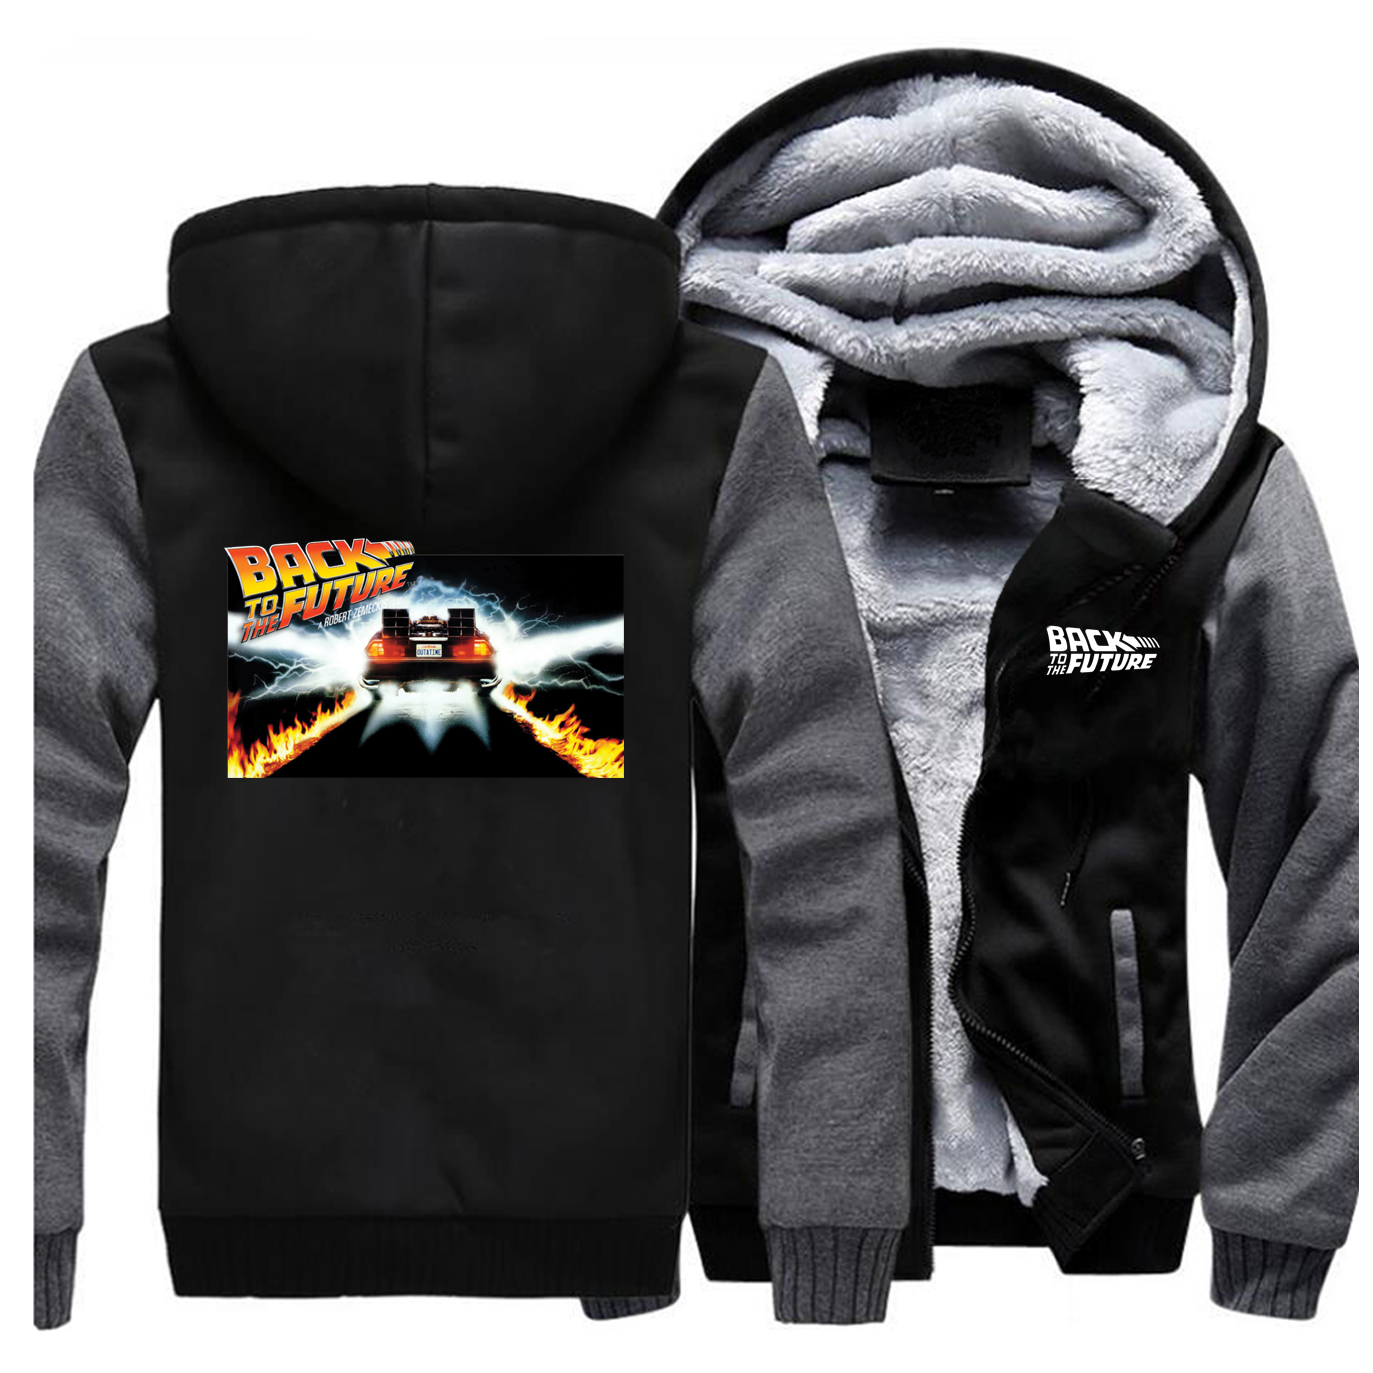 Back To The Future Jackets Men Sweatshirts Hoodies Winter Thick Zipper Fleece Warm Coats Sportswear Outwear Outdoor Plus Size